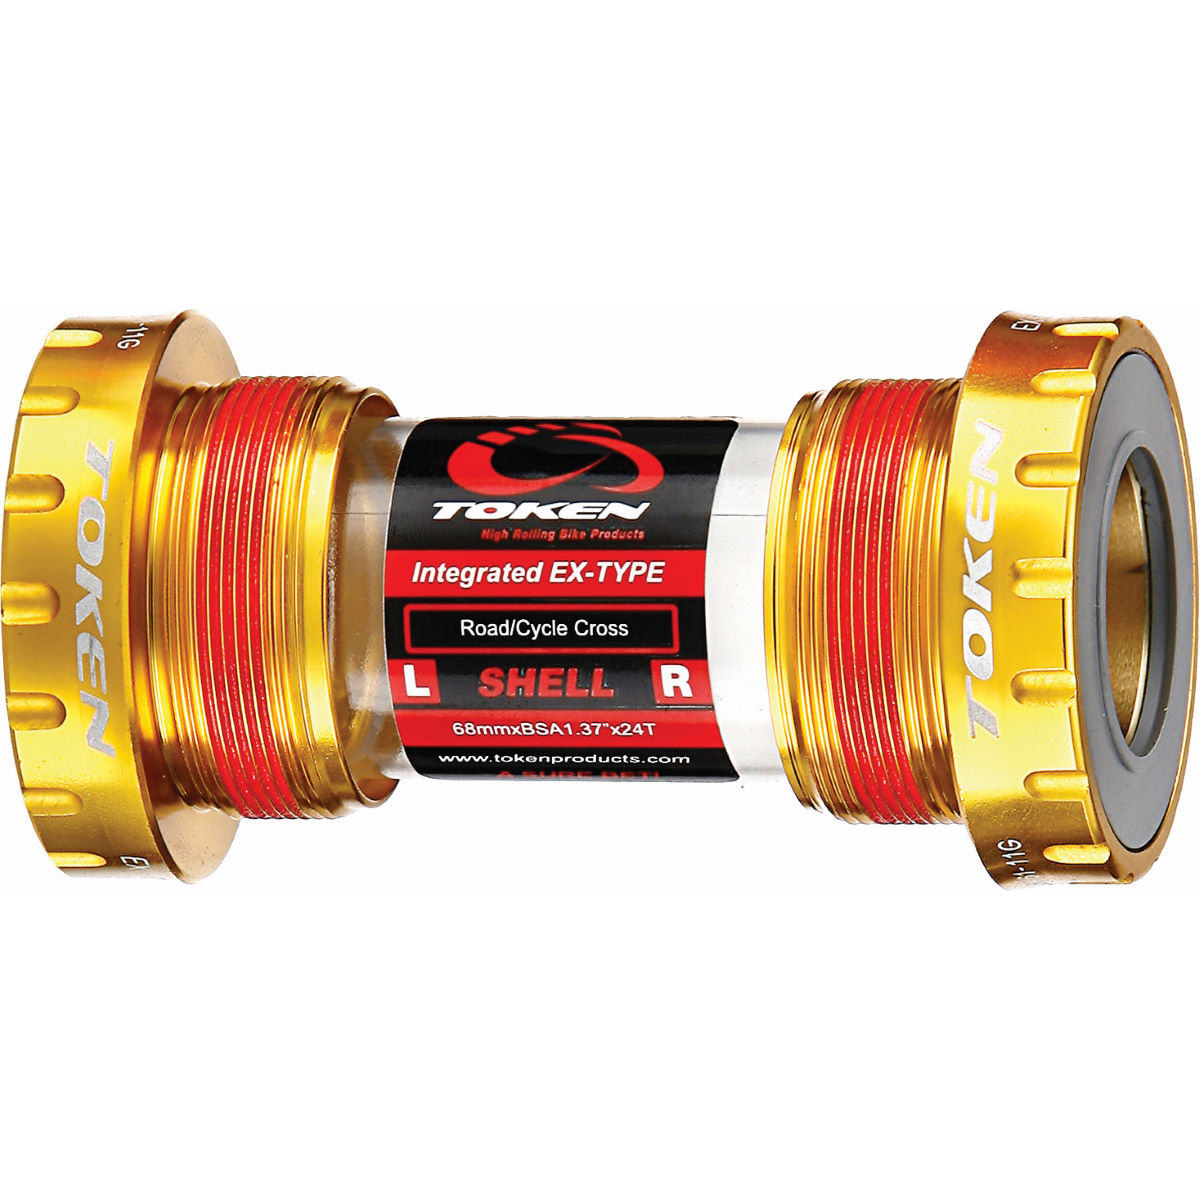 Roulements Tiramic Token TK878TBT Road BSA 68mm EX BB - Taille unique